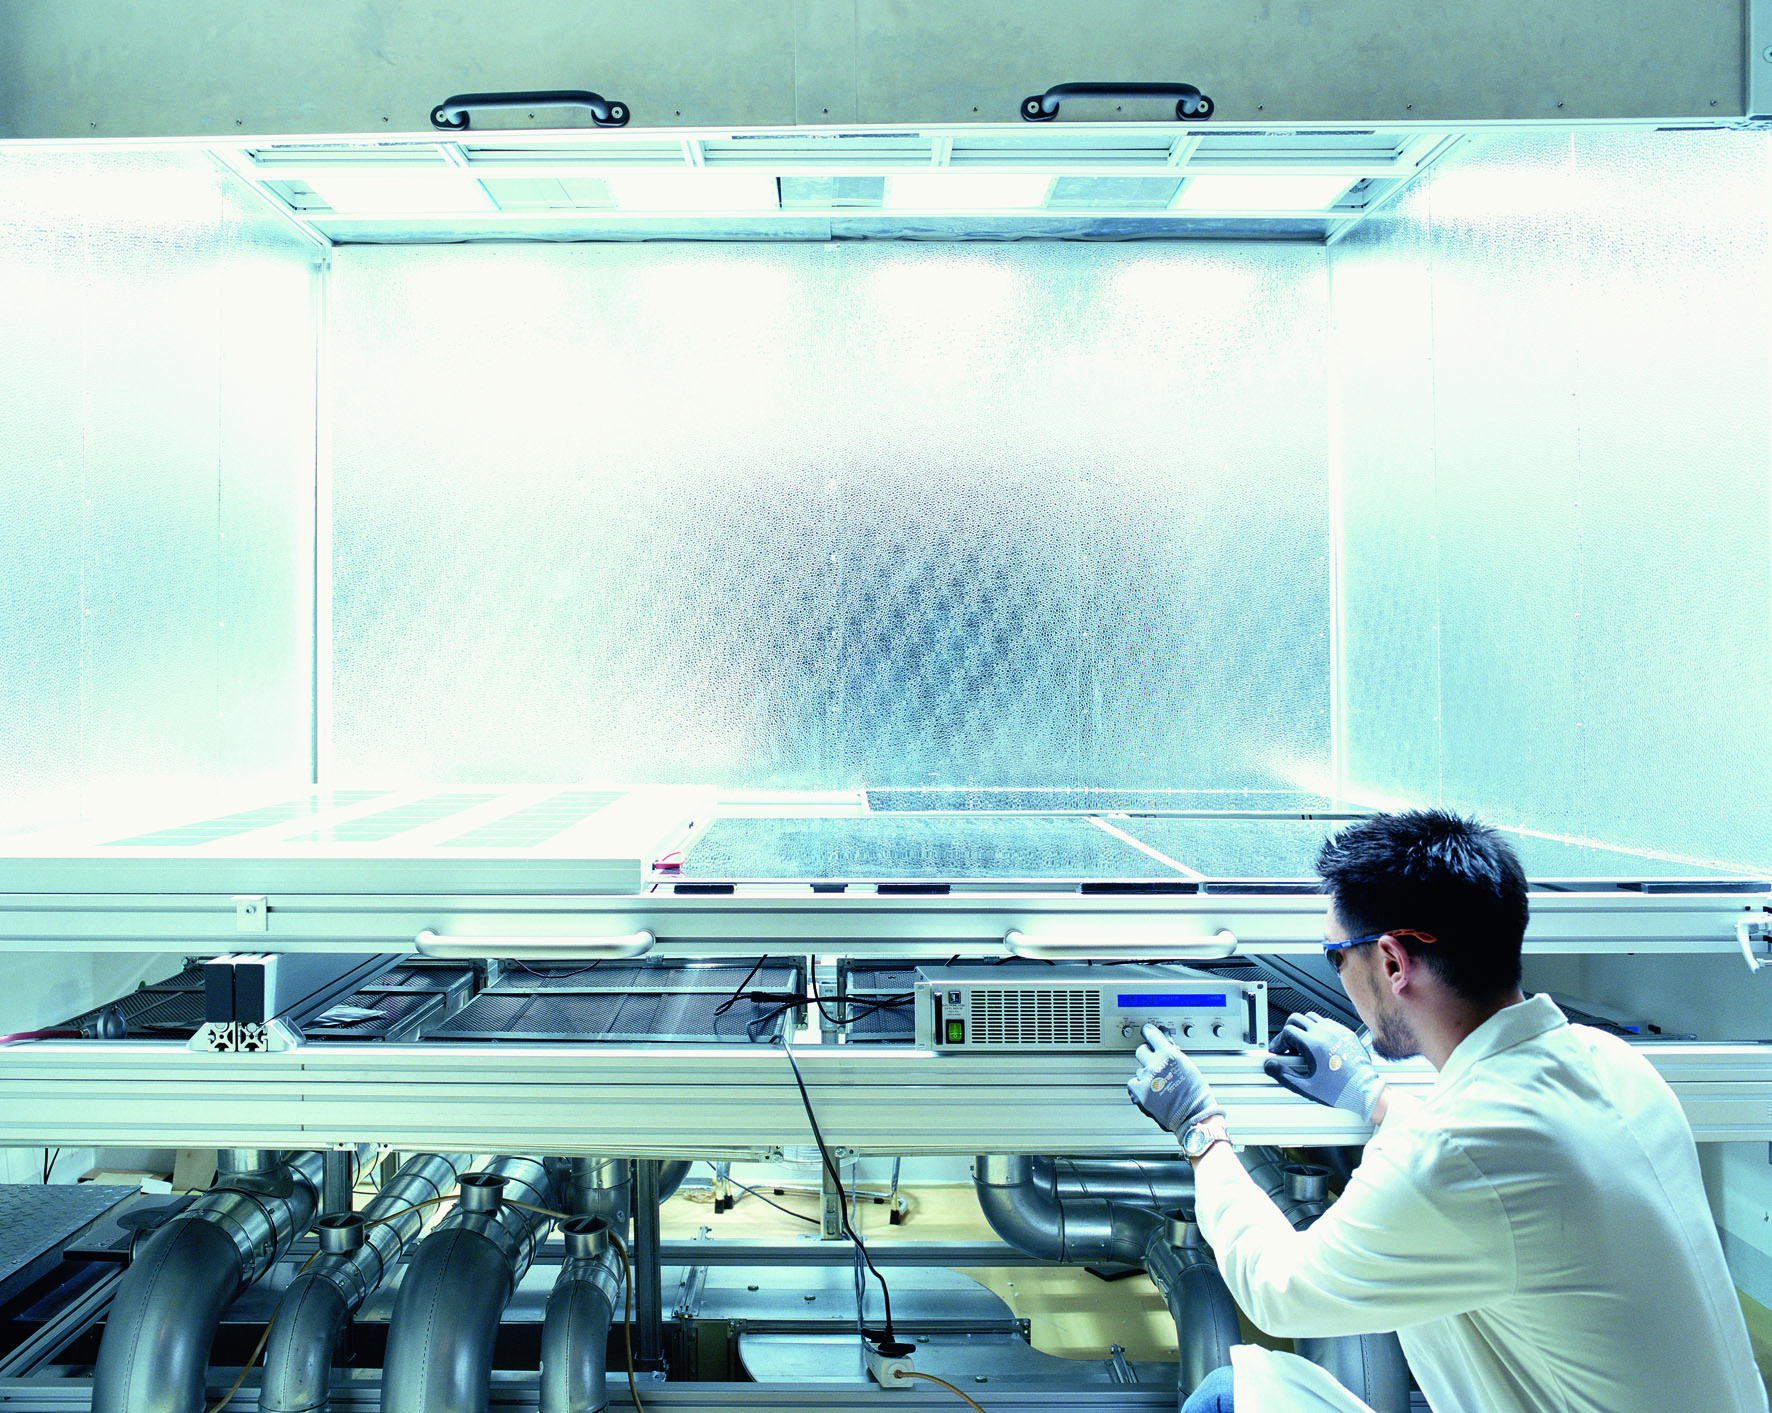 Cell and module testing at Hanwha Q Cells: Image Hanwha Q CELLS